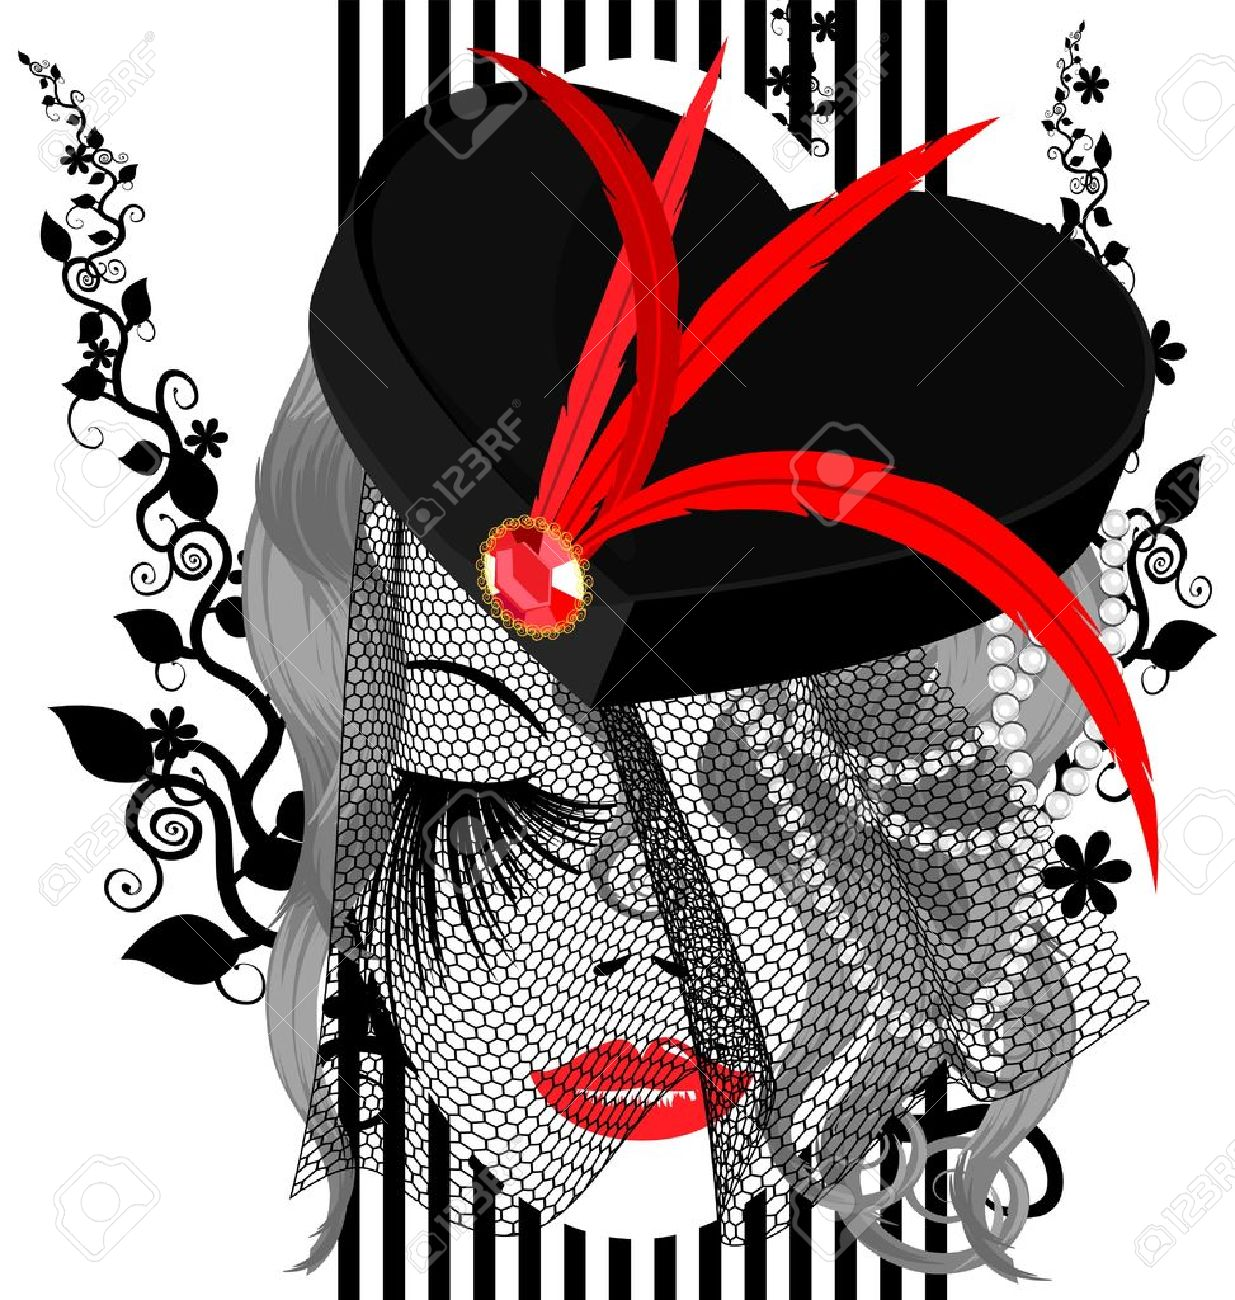 on a white background is outlines abstract woman s face with black hat with red feathers and veil Stock Vector - 12492211